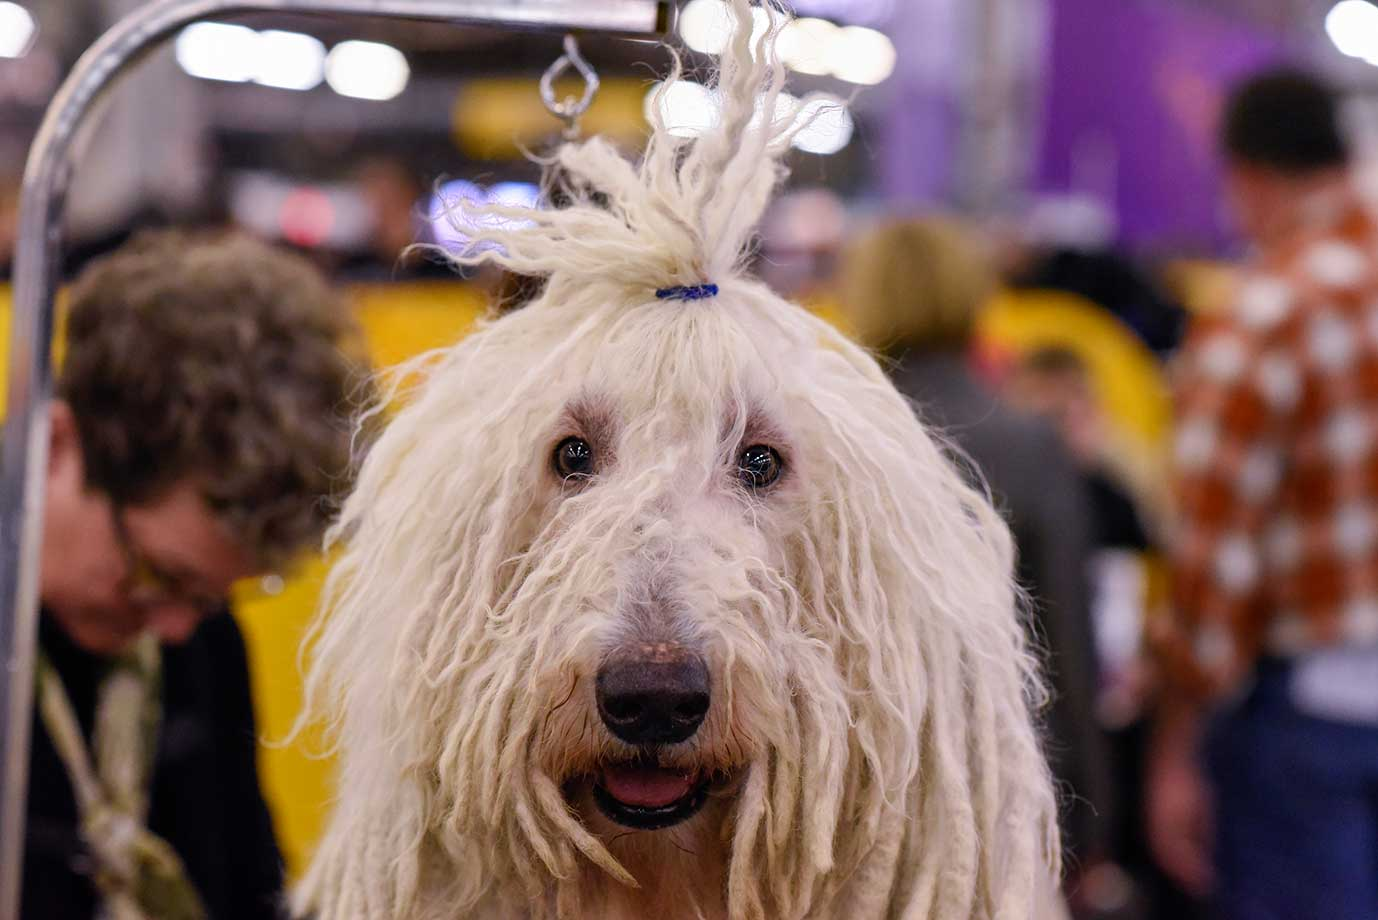 A Komondor waits in the grooming area during day two of competition of the Westminster Kennel Club dog show.